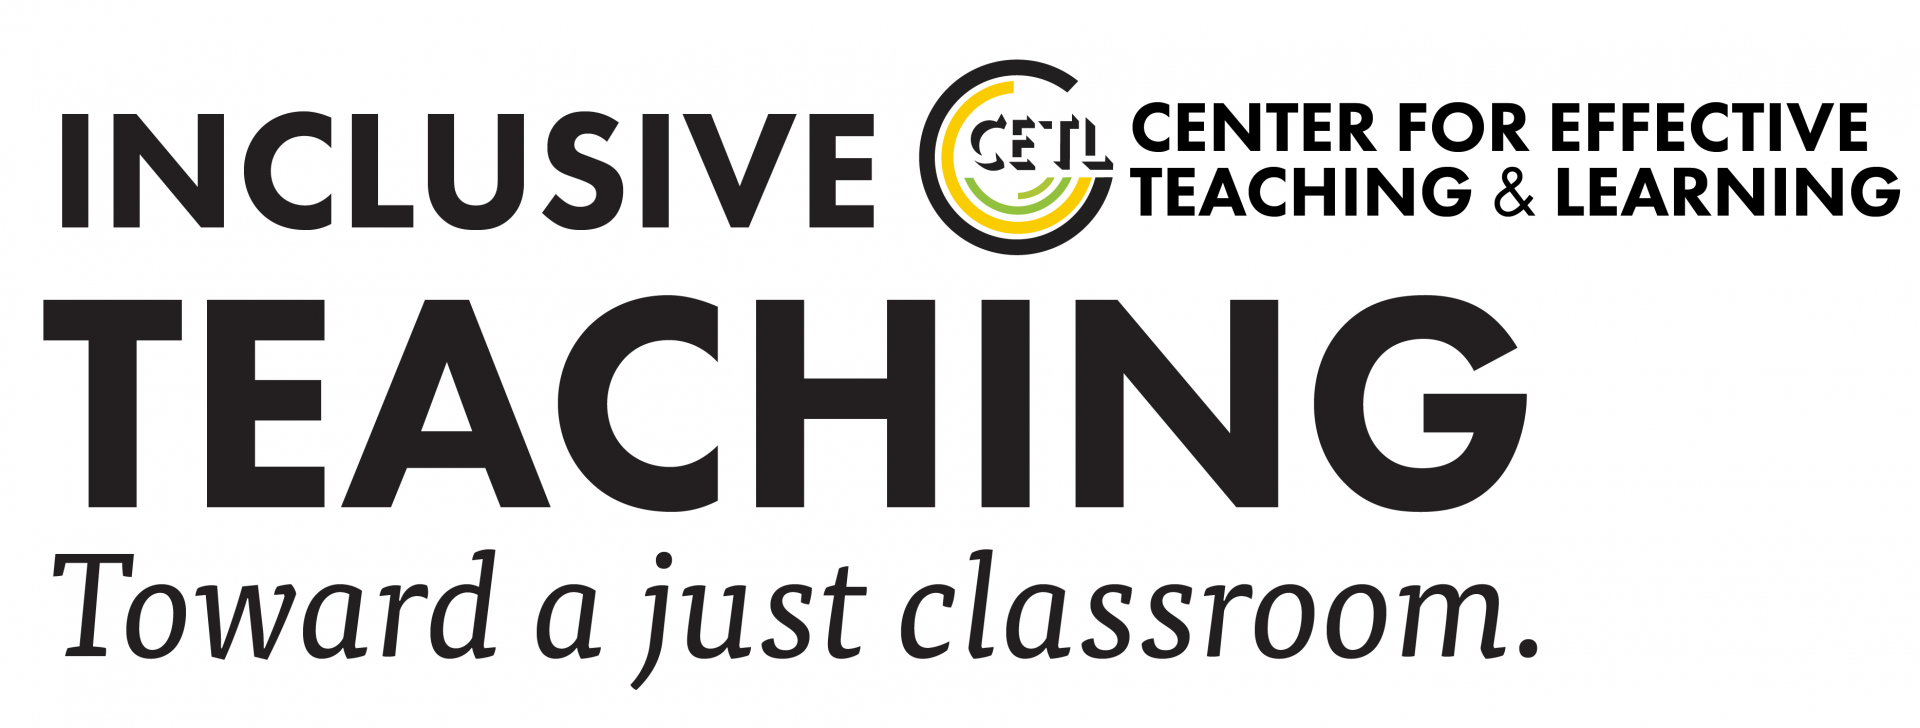 Inclusive Teaching Program